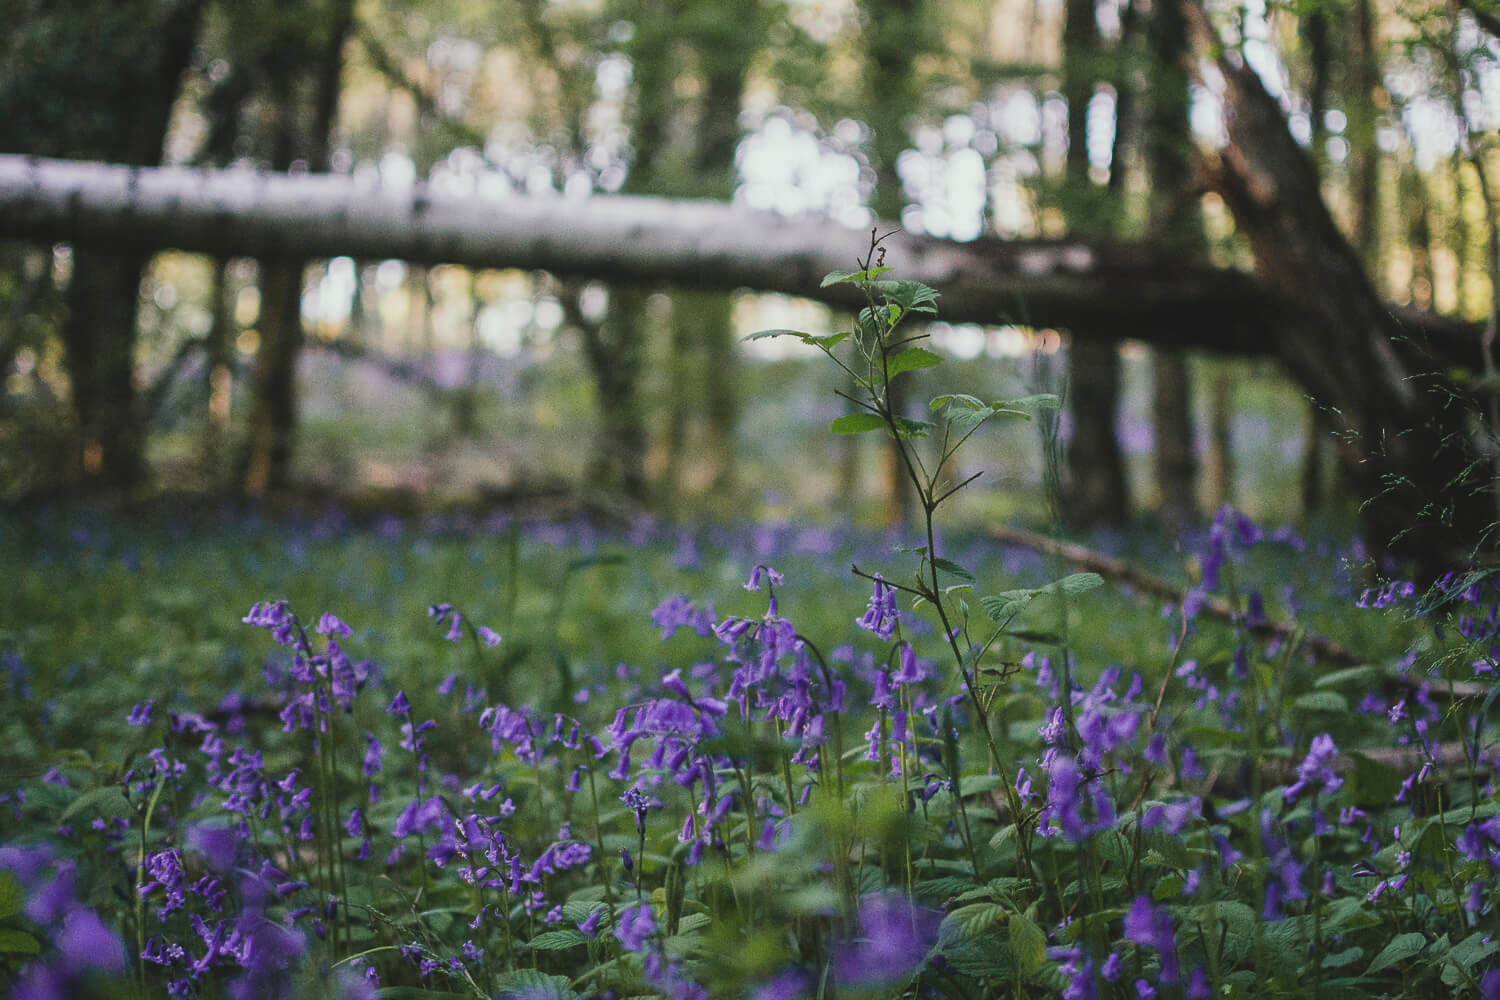 Bluebells and wild flowers - find your strengths and weaknesses